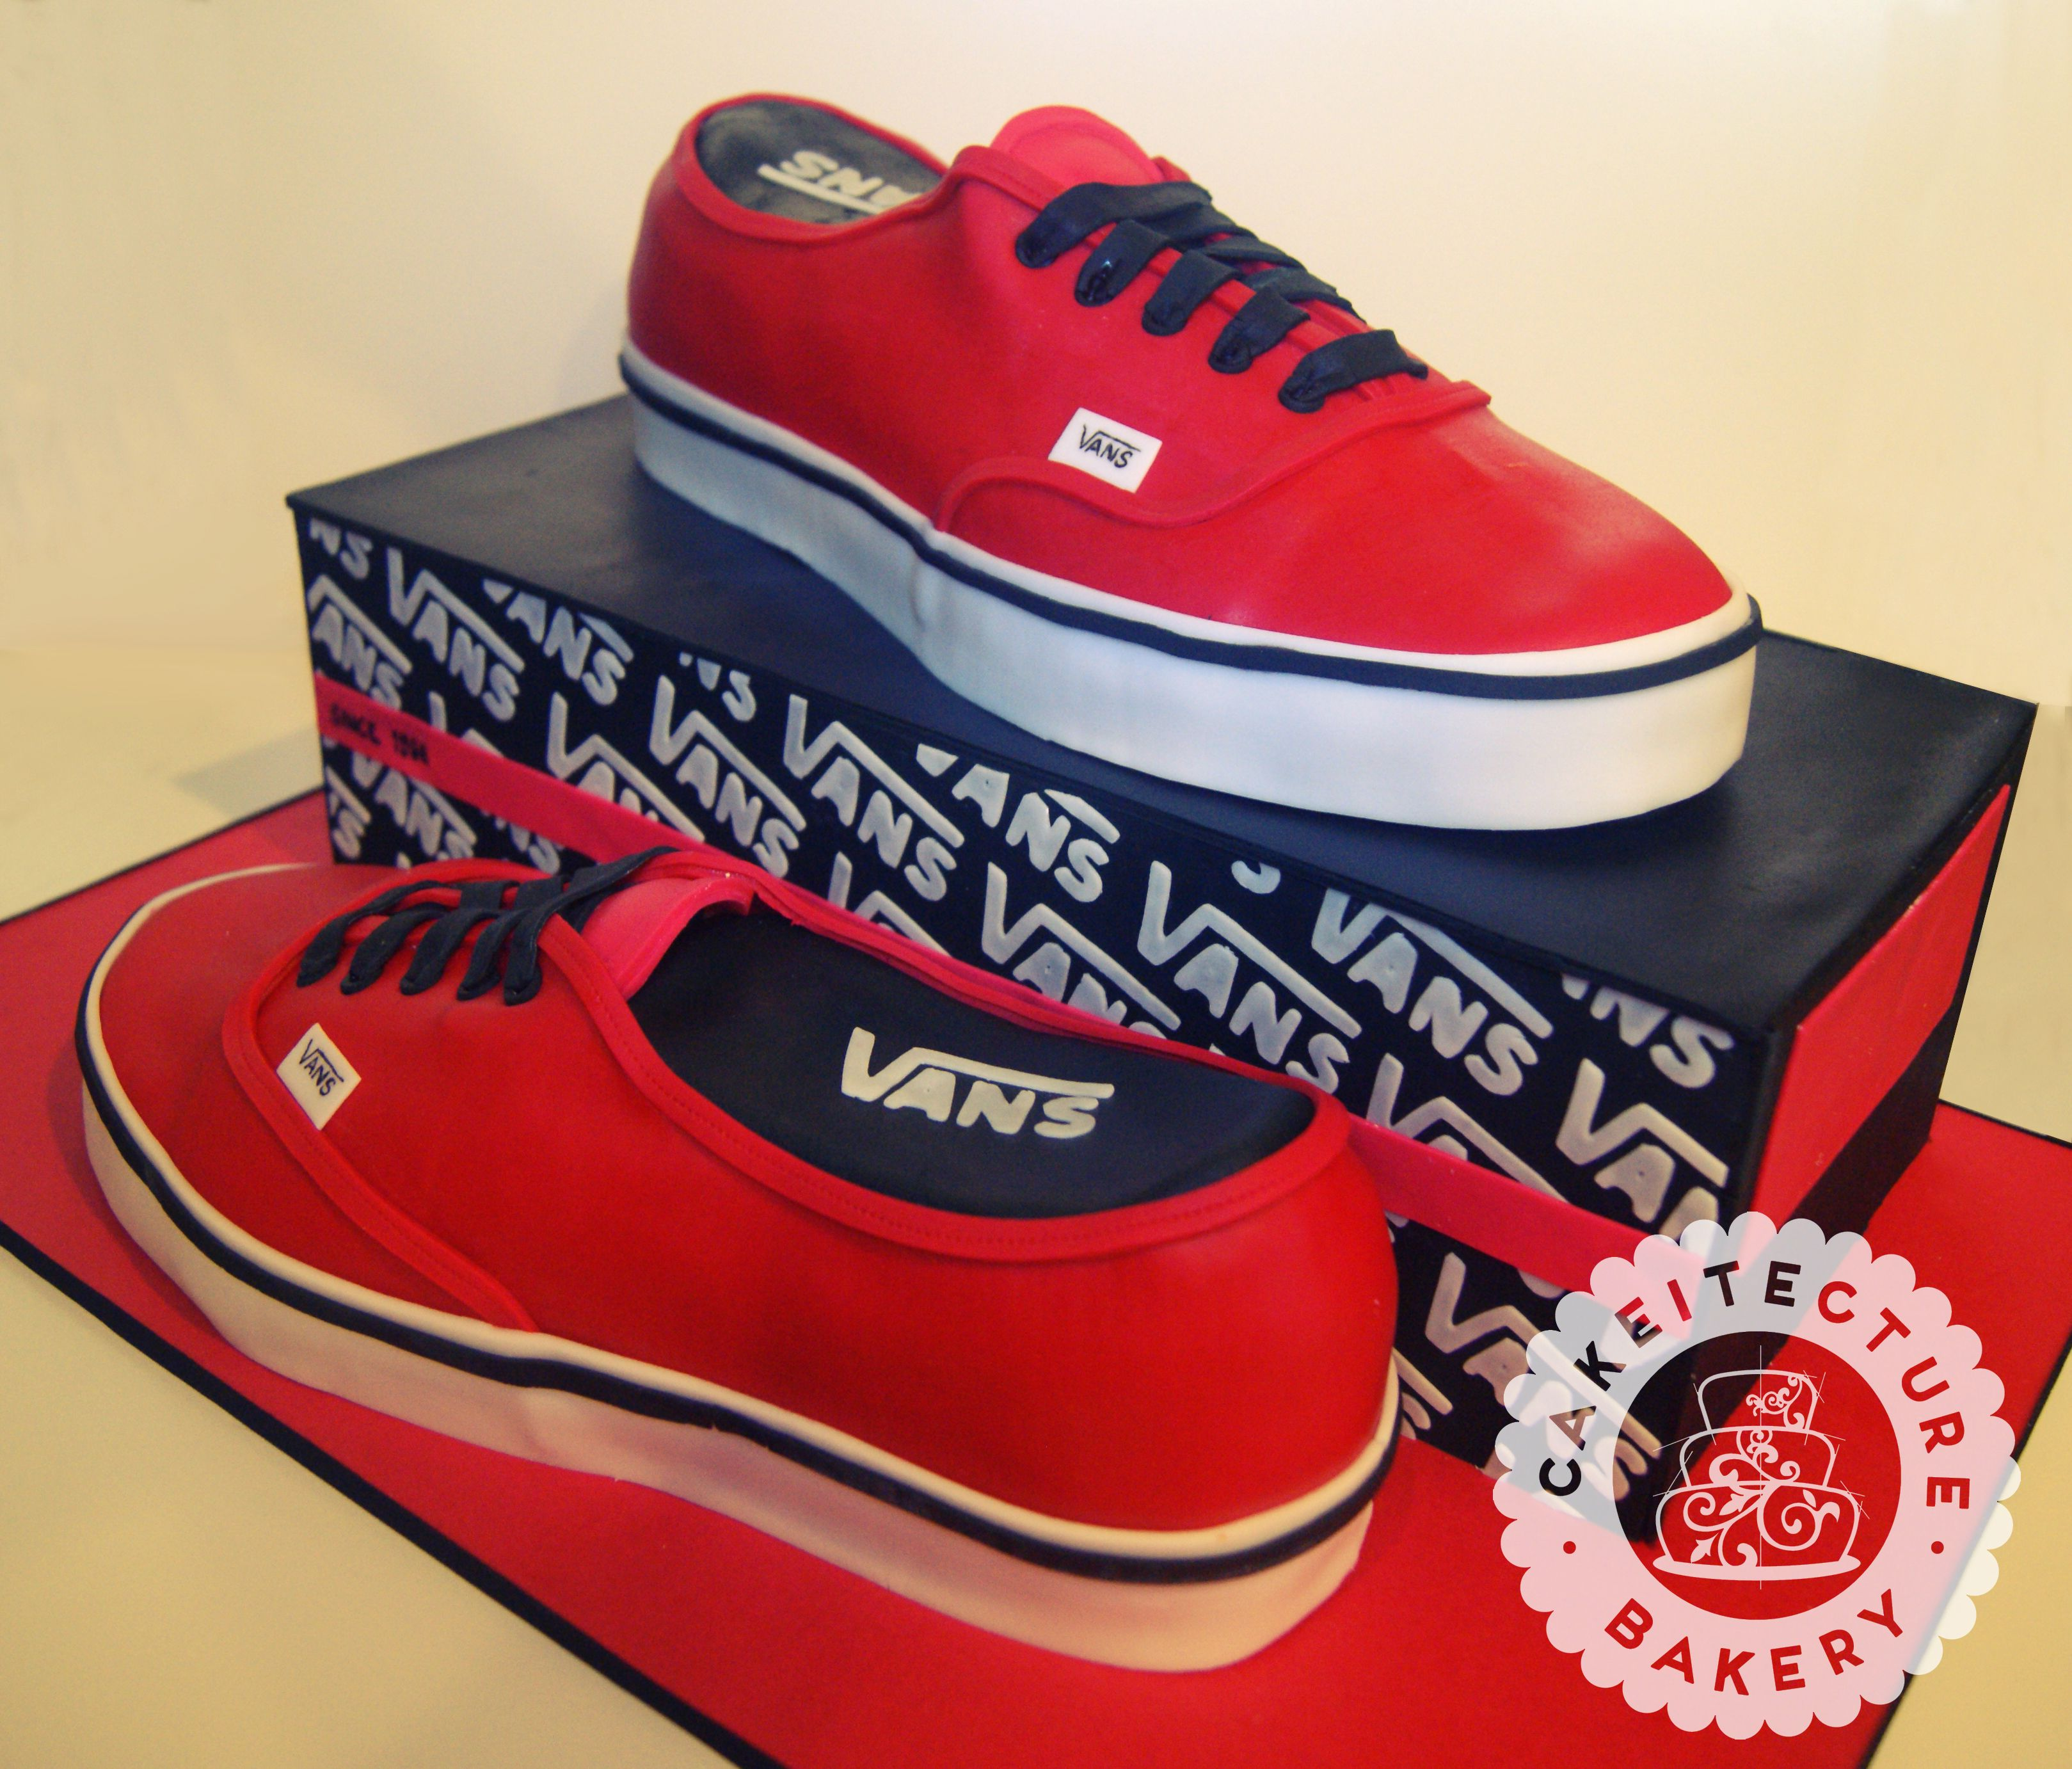 Vans Shoe Cake Cakeitecture Sculpted Cakes Shoe Cakes